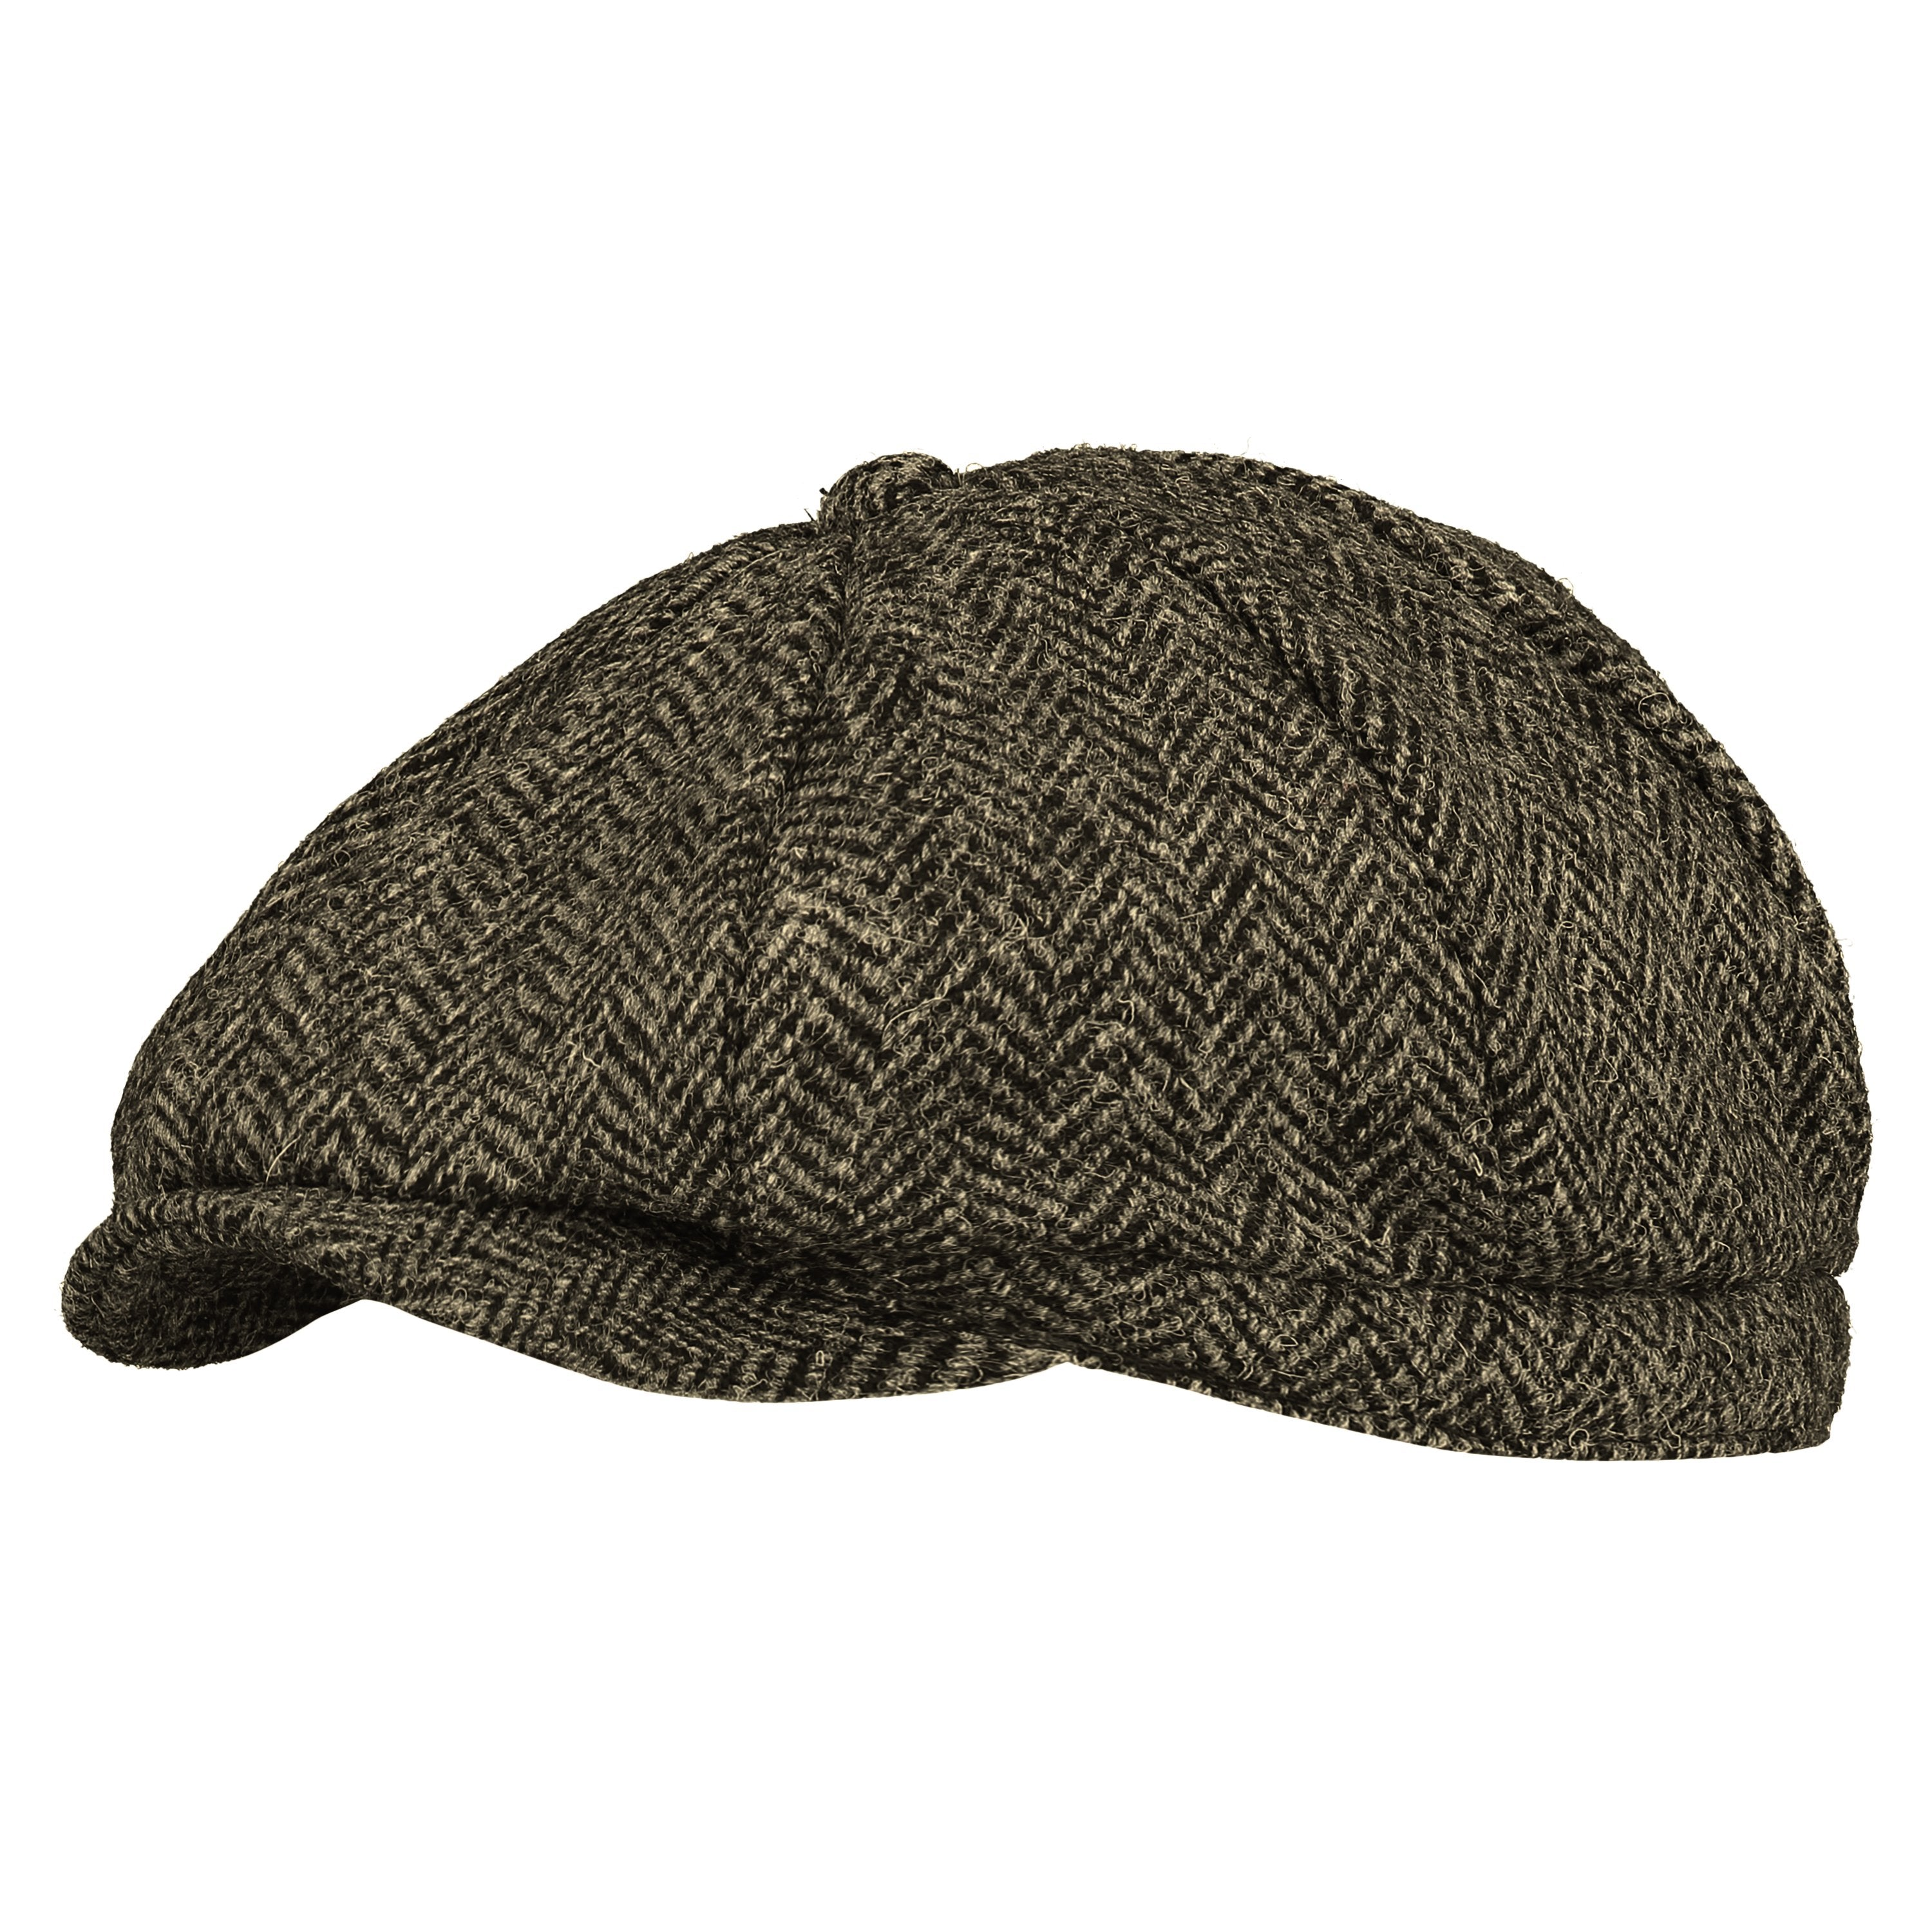 18fb71f3114ca Mens Harris Tweed Bakerboy Flat Cap Hat from Ugly Me London – Pretty You  London US